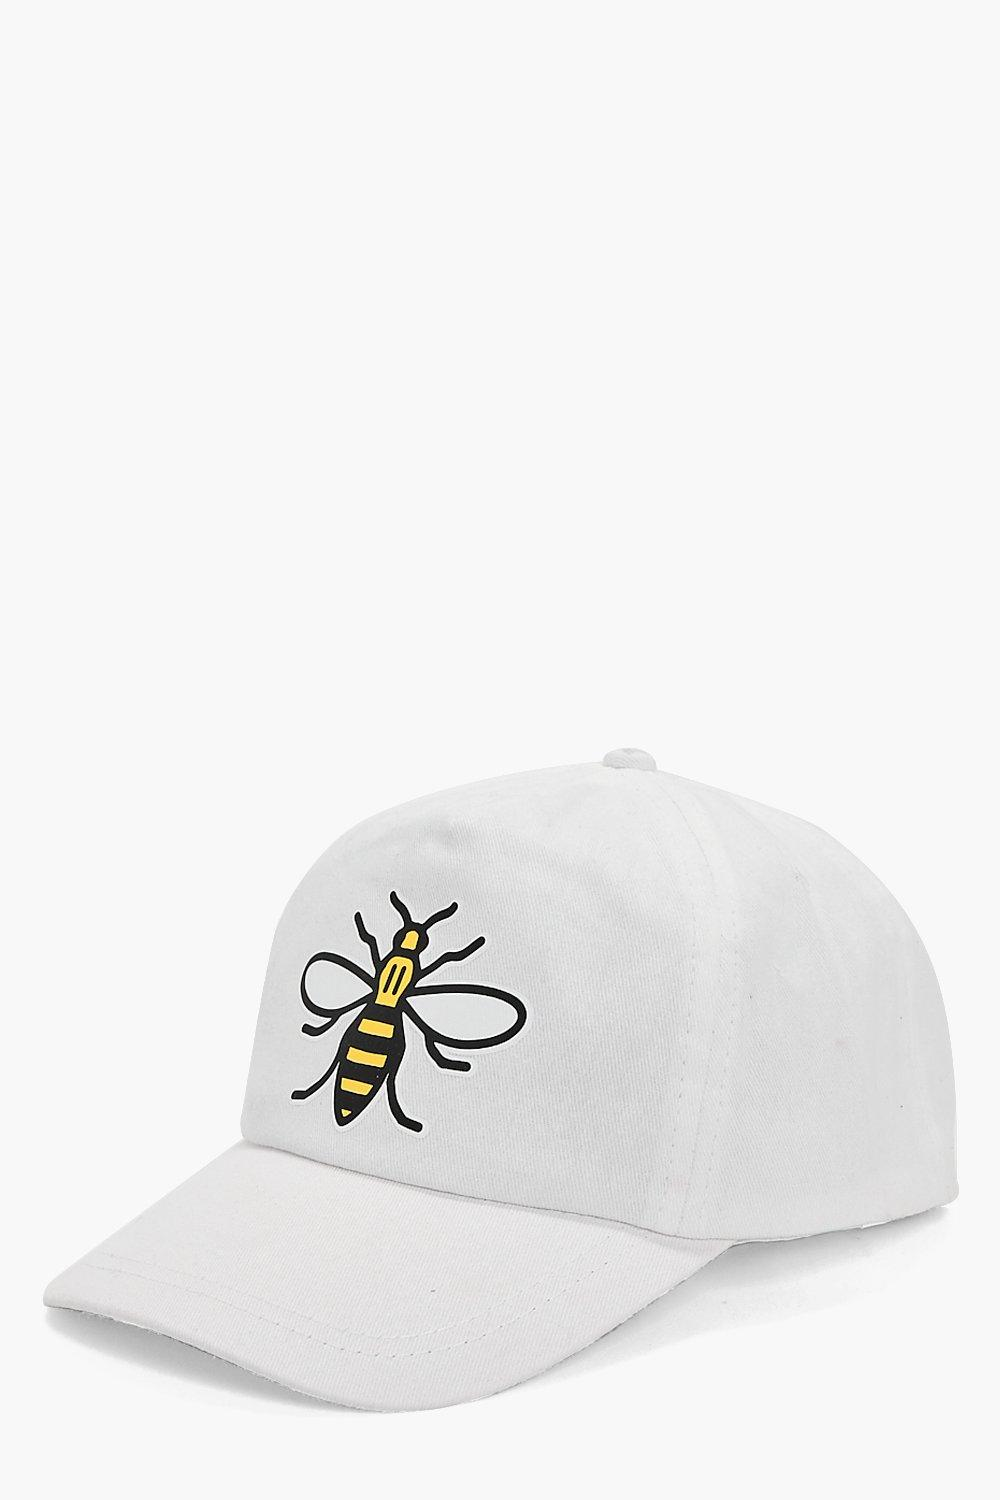 Cap - Bee - white - Charity Cap - Bee - white